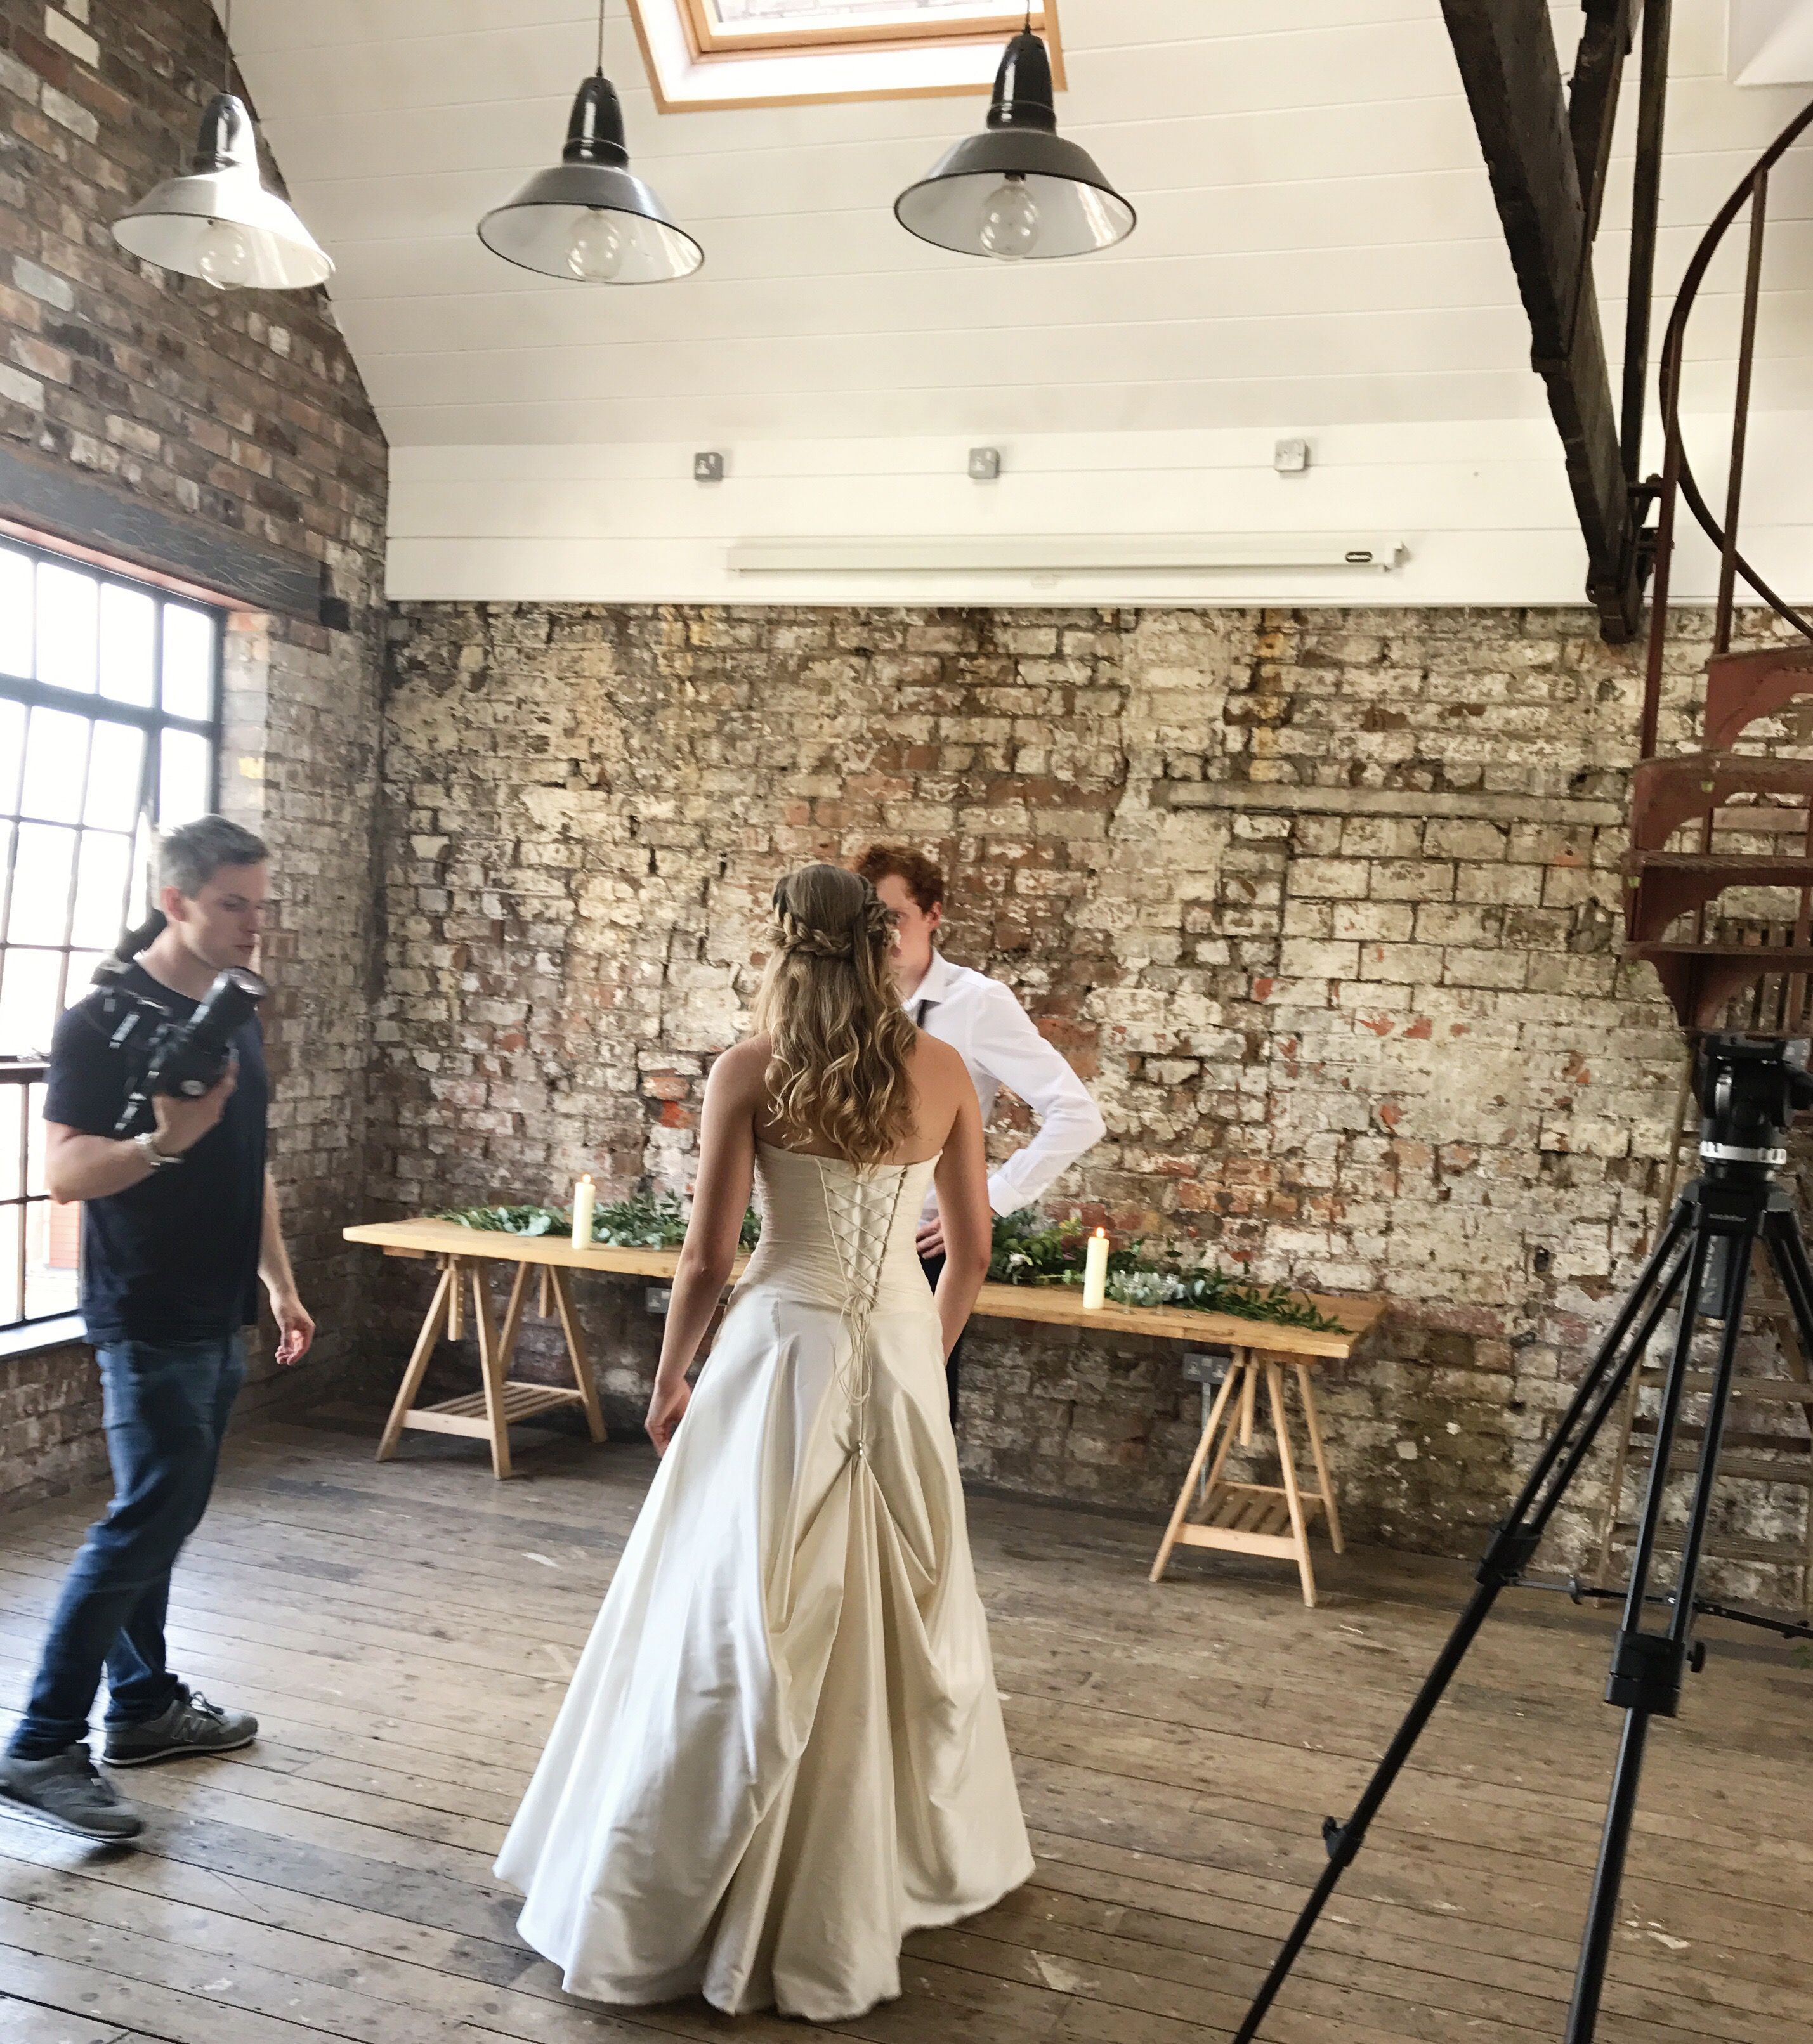 A Flashback To The Filming Of Trainloop Just Perfect For Your First Wedding Dance A Simple Solution To Bustle Wedding Dress Train Dress Train Wedding Dance